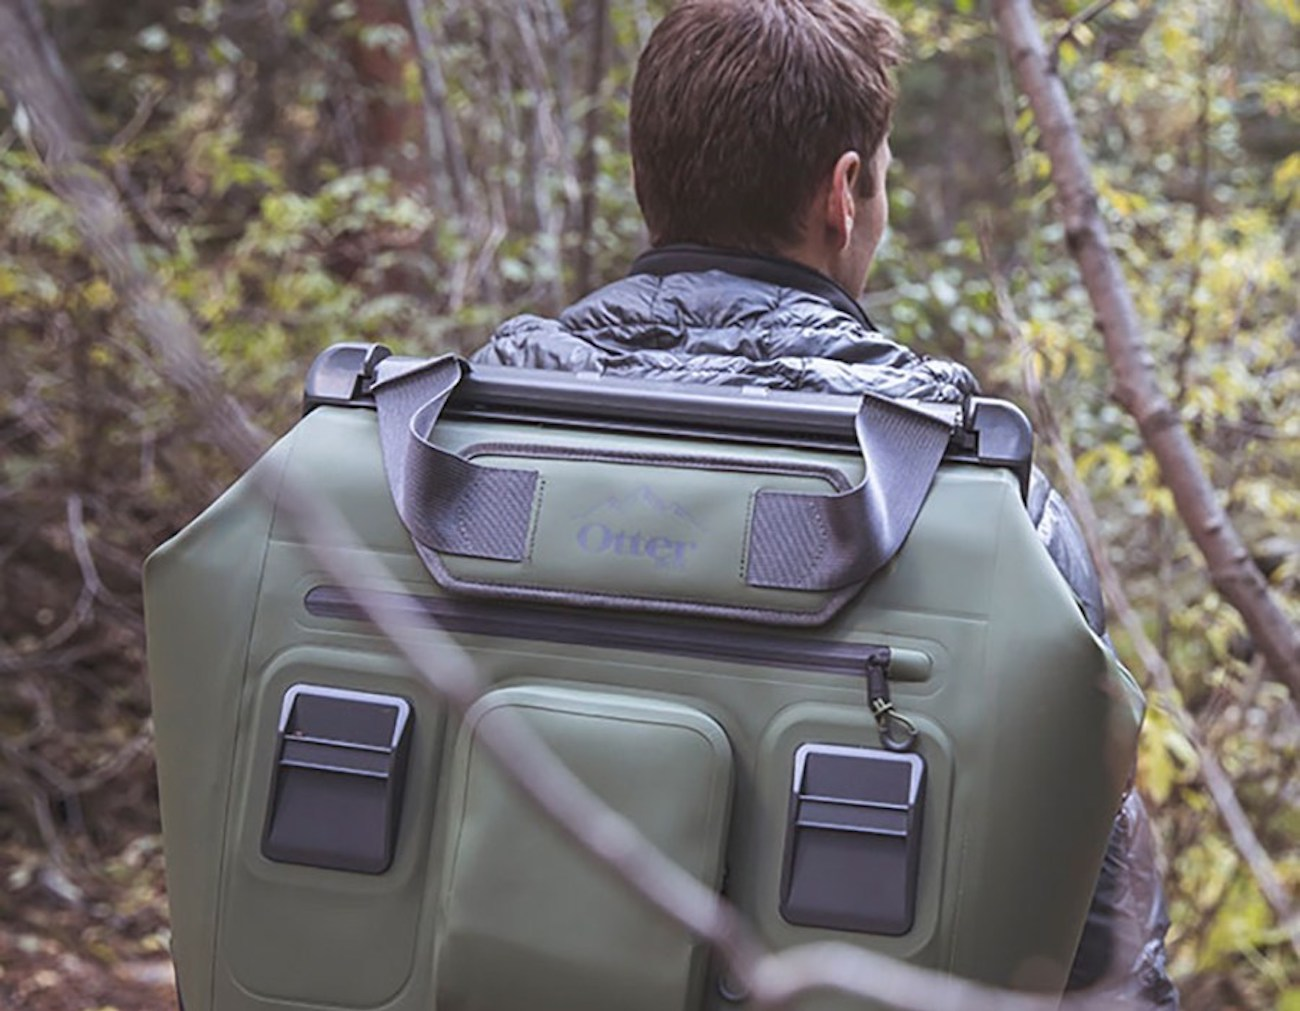 OtterBox Trooper LT 30 Backpack Adventure Cooler keeps you fueled